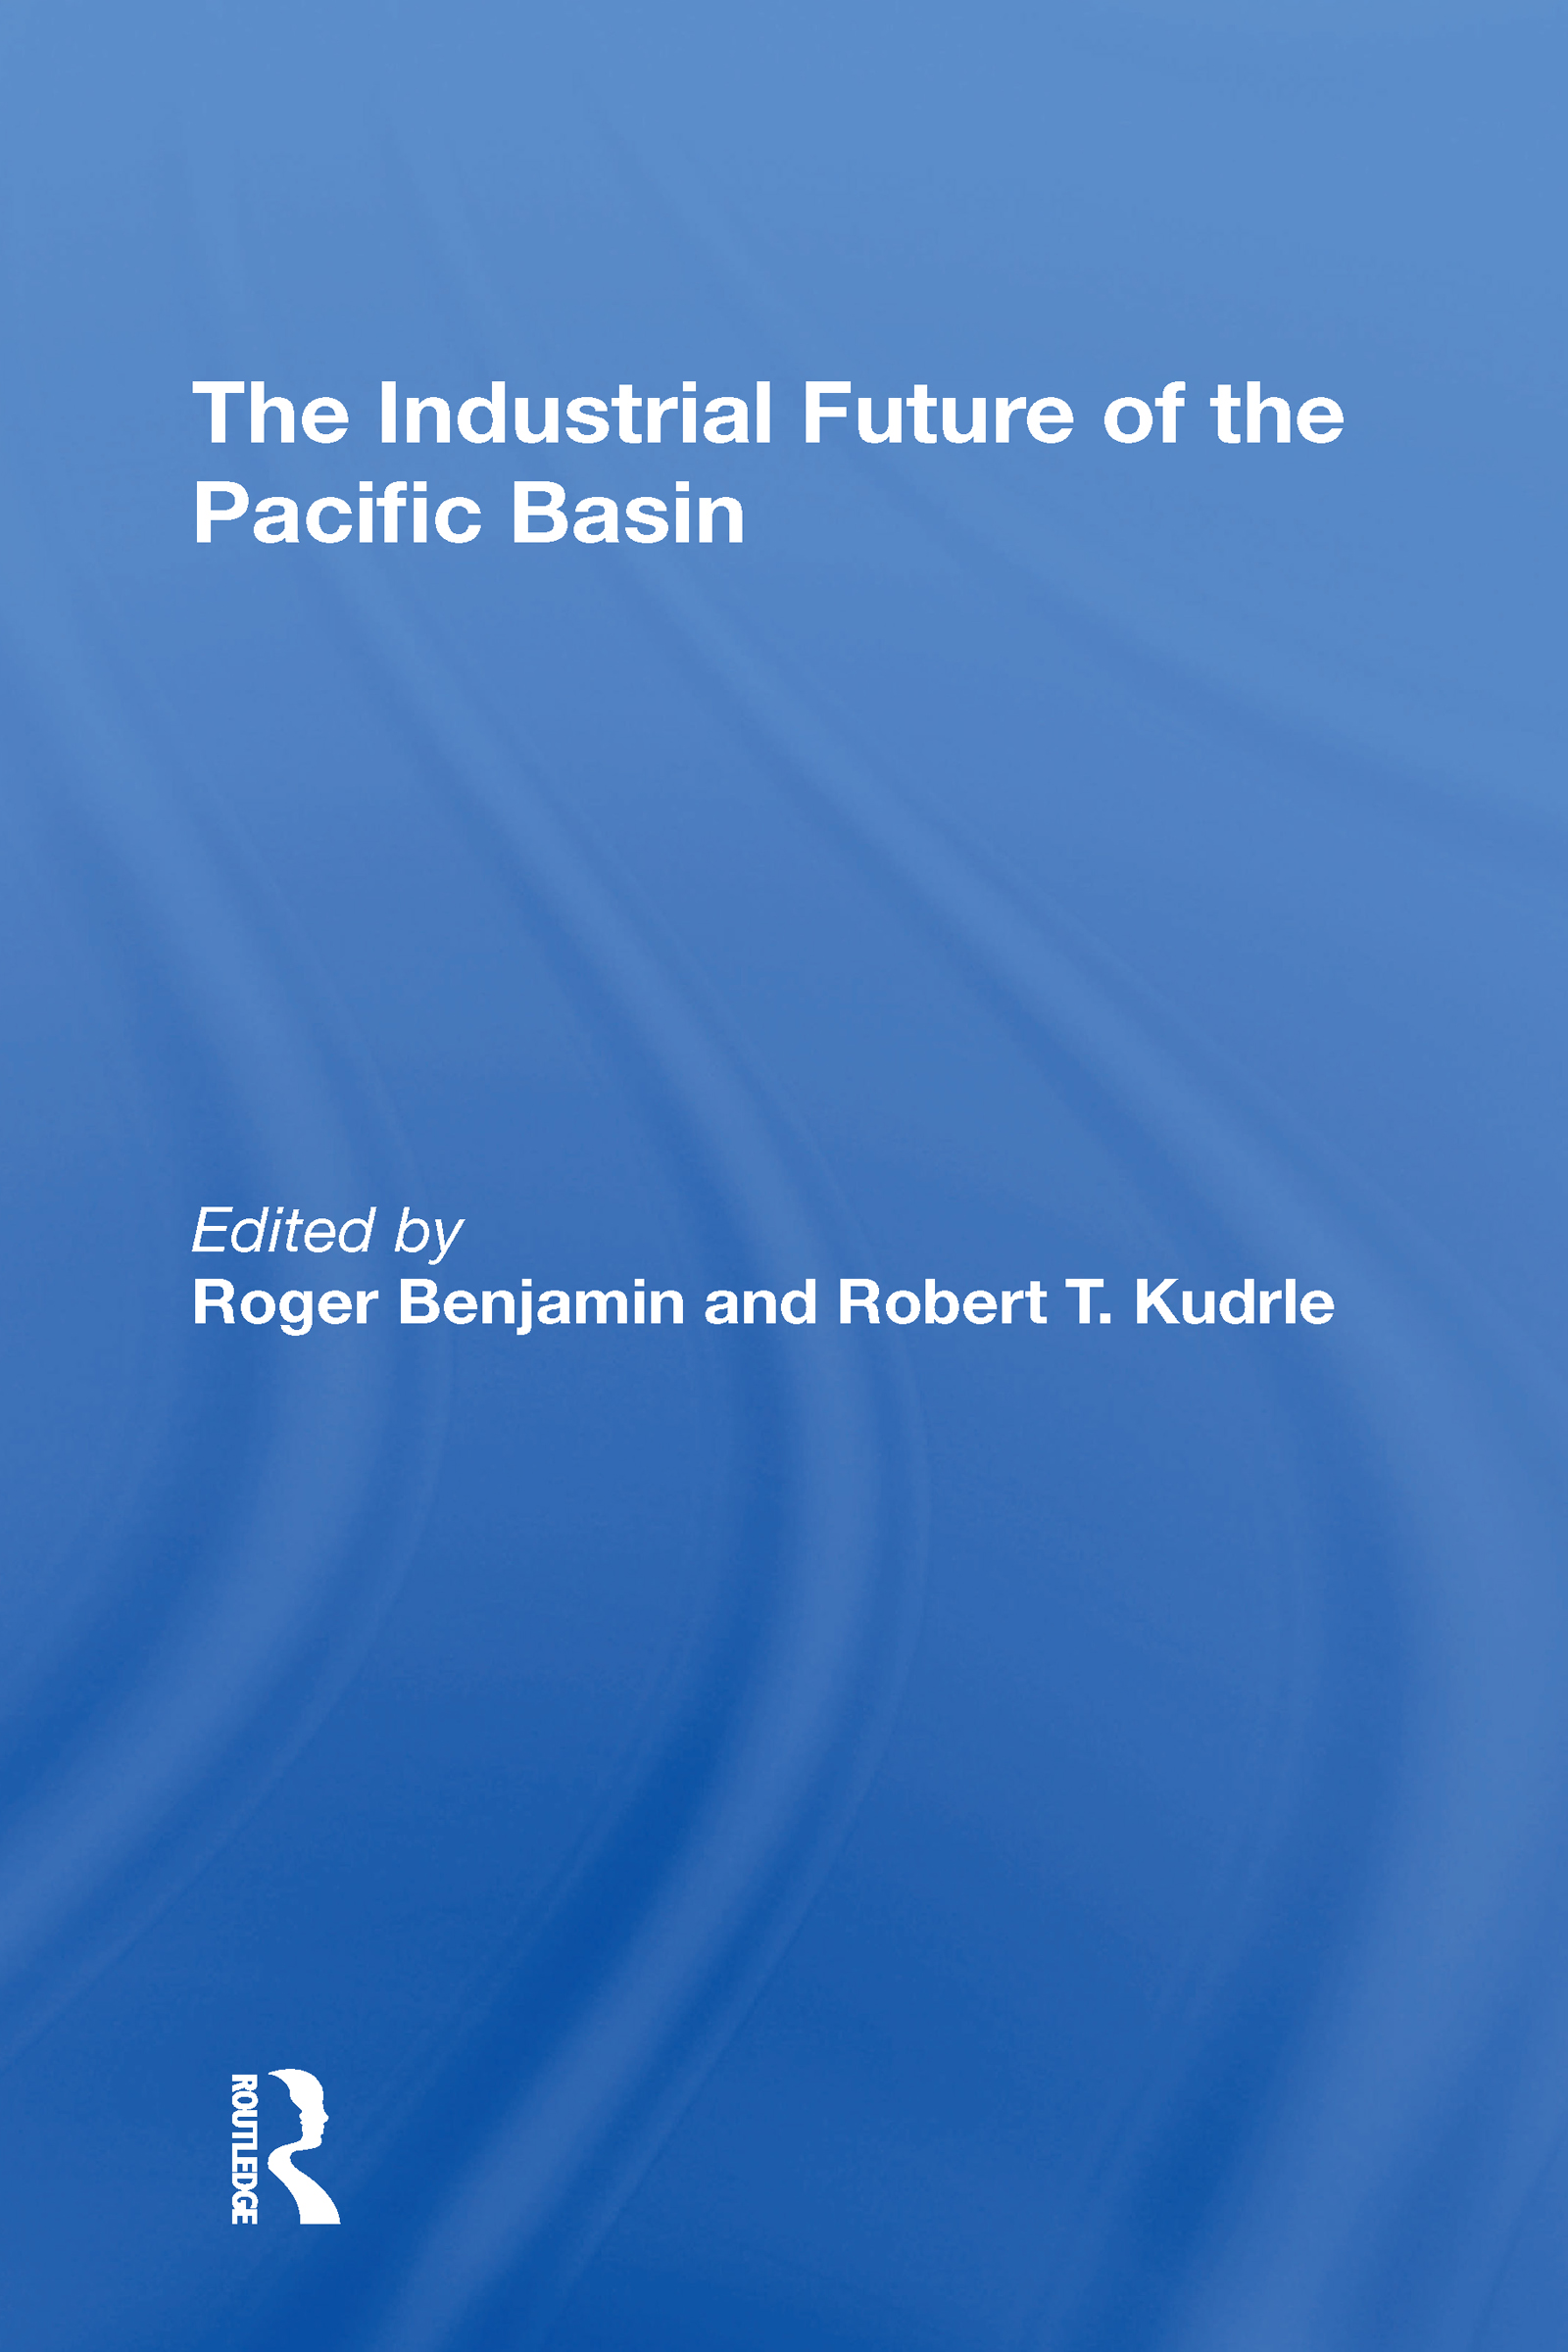 The Industrial Future Of The Pacific Basin